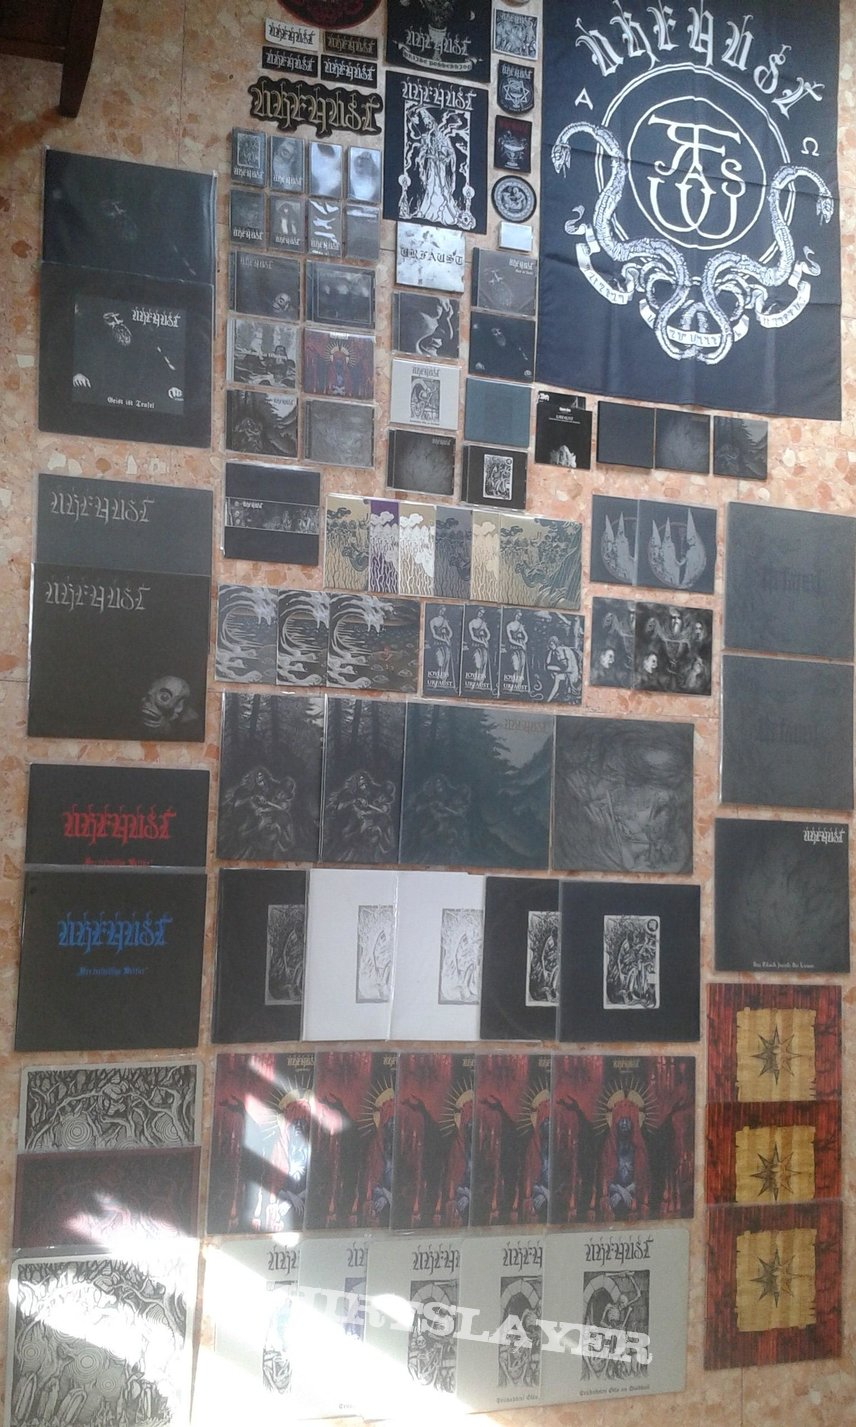 Urfaust music collection